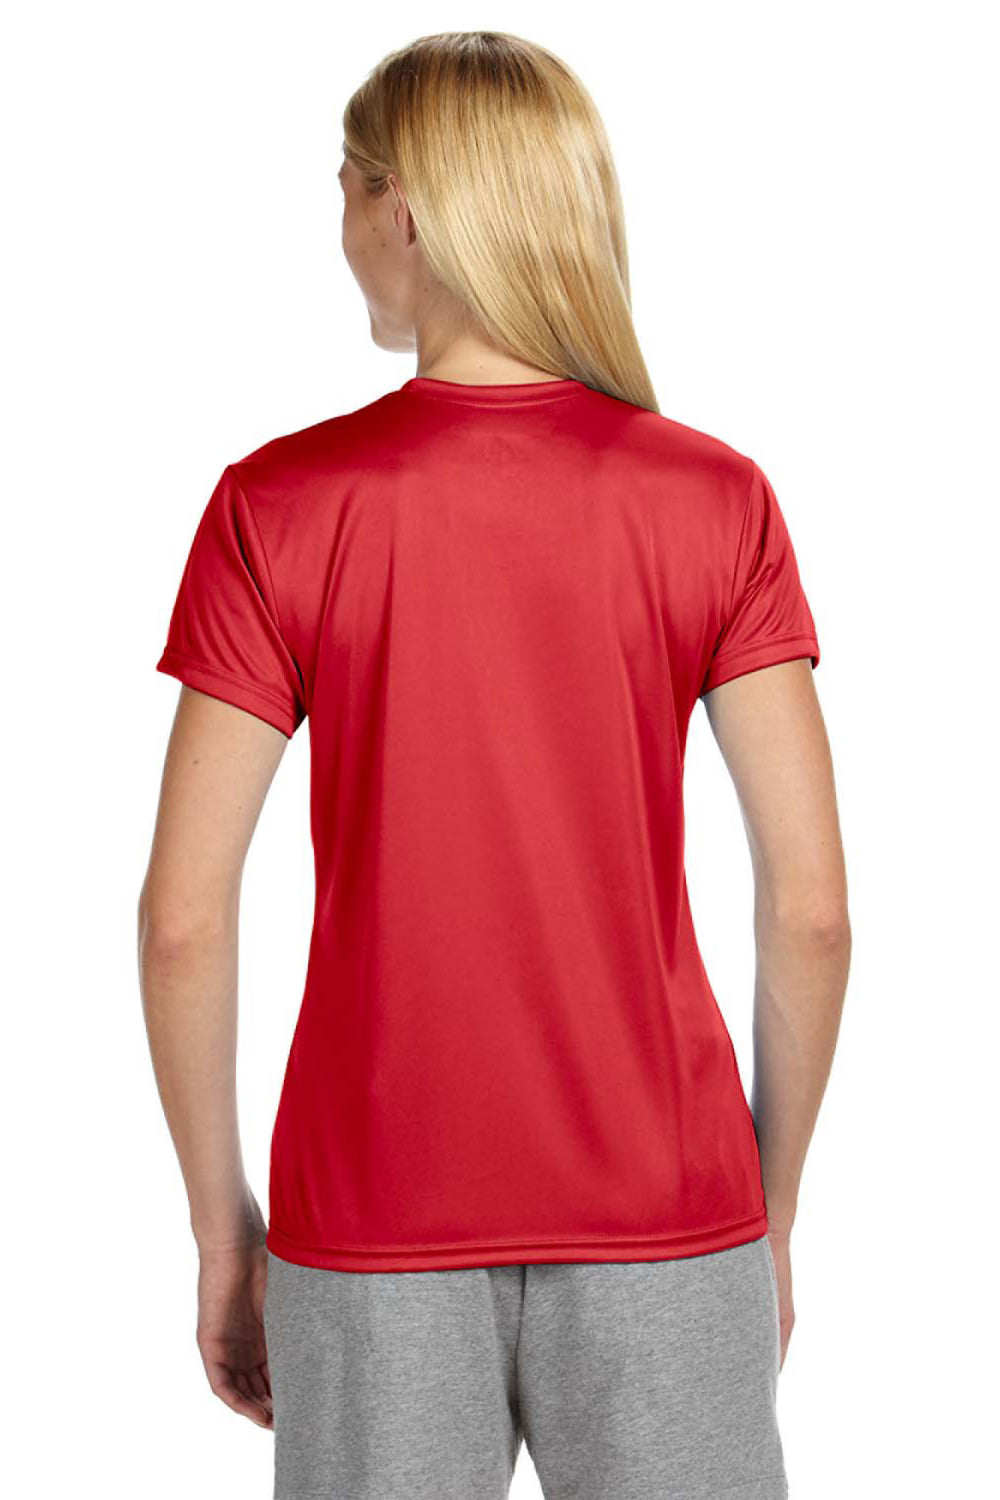 A4 NW3201 Womens Cooling Performance Moisture Wicking Short Sleeve Crewneck T-Shirt Red Back